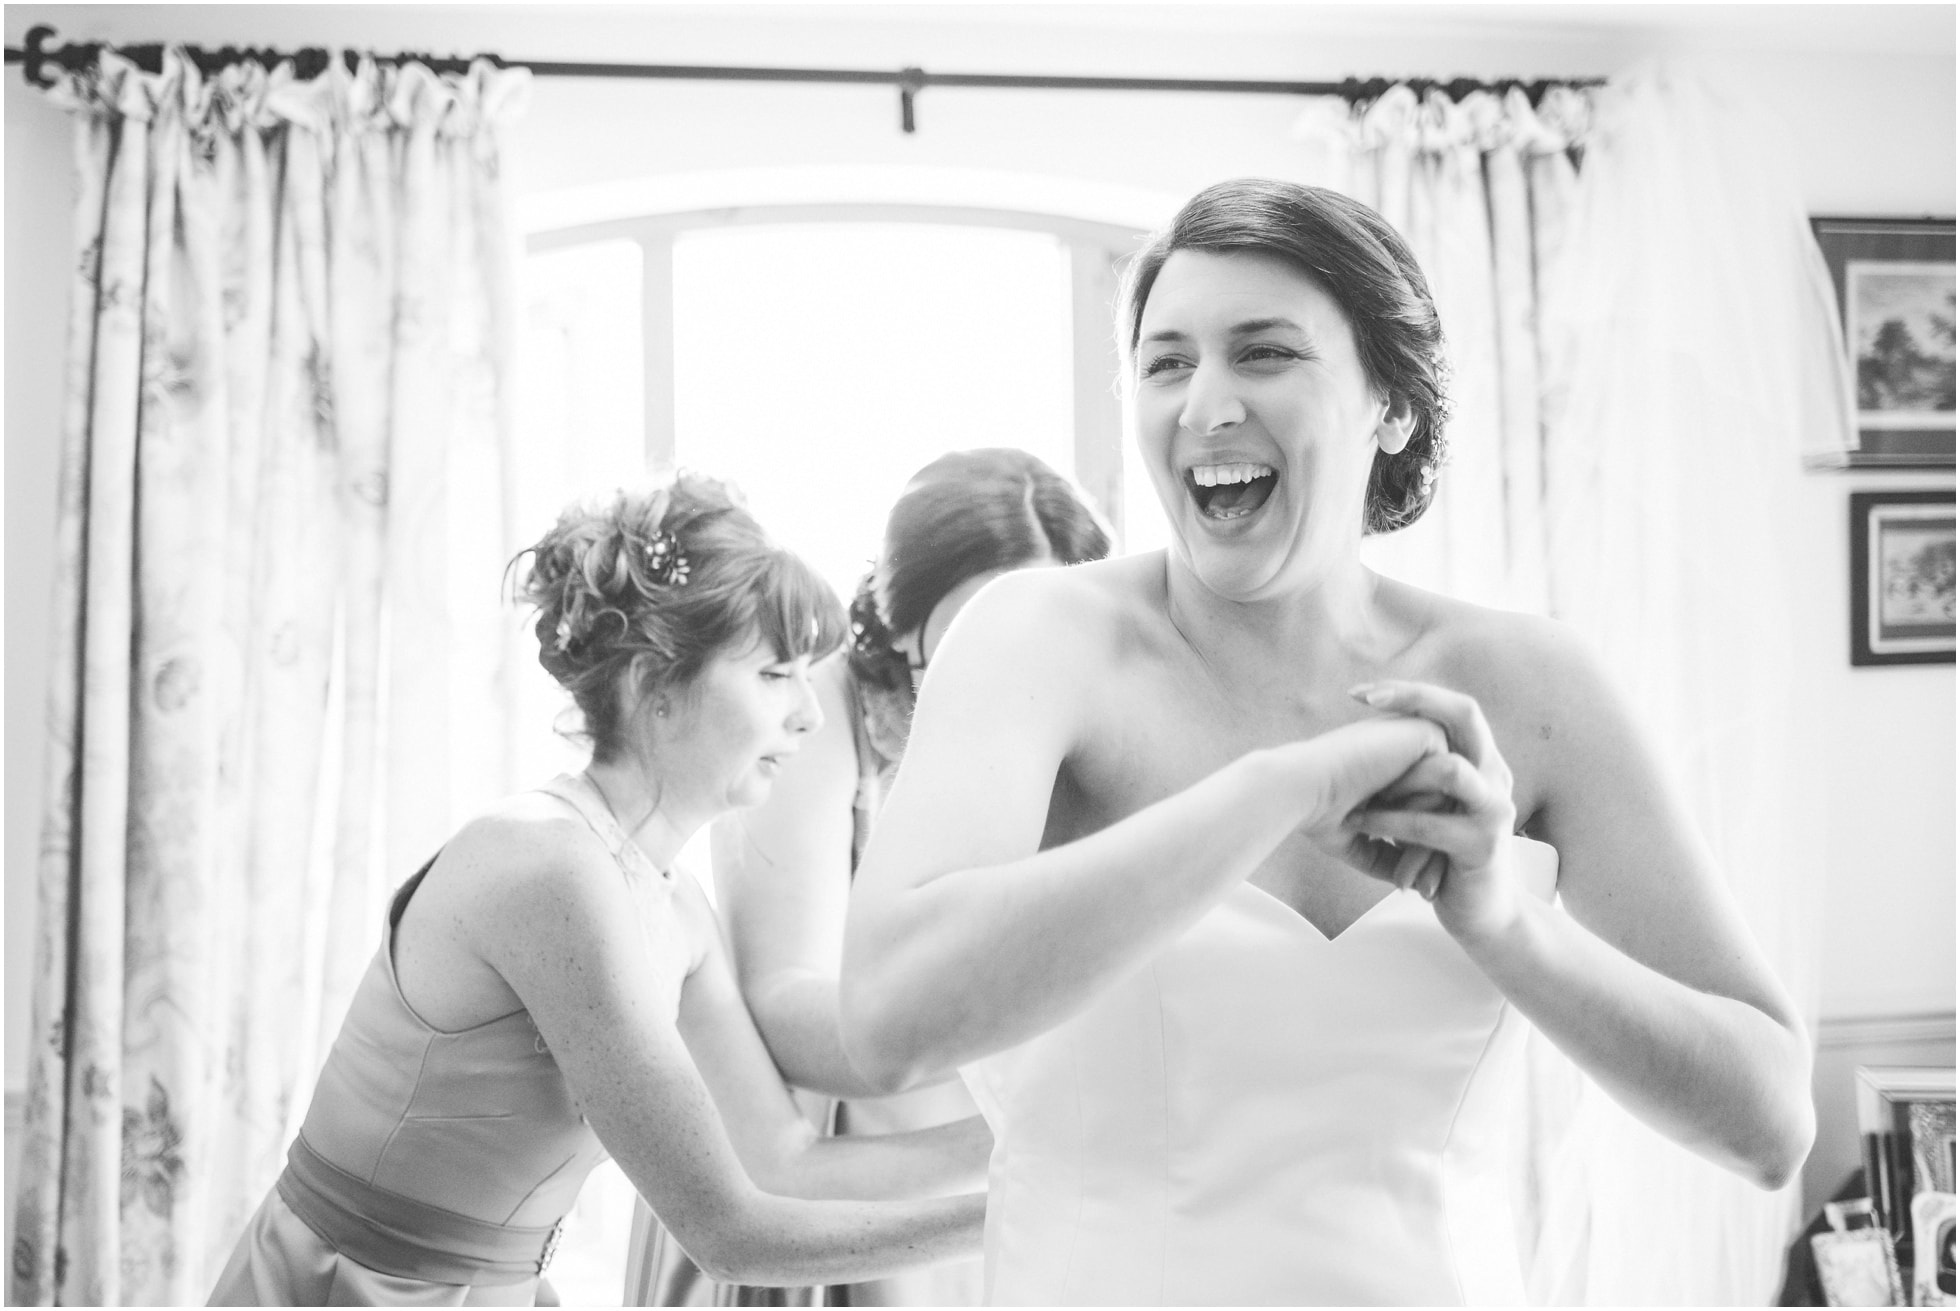 Laughter as the dress is put on